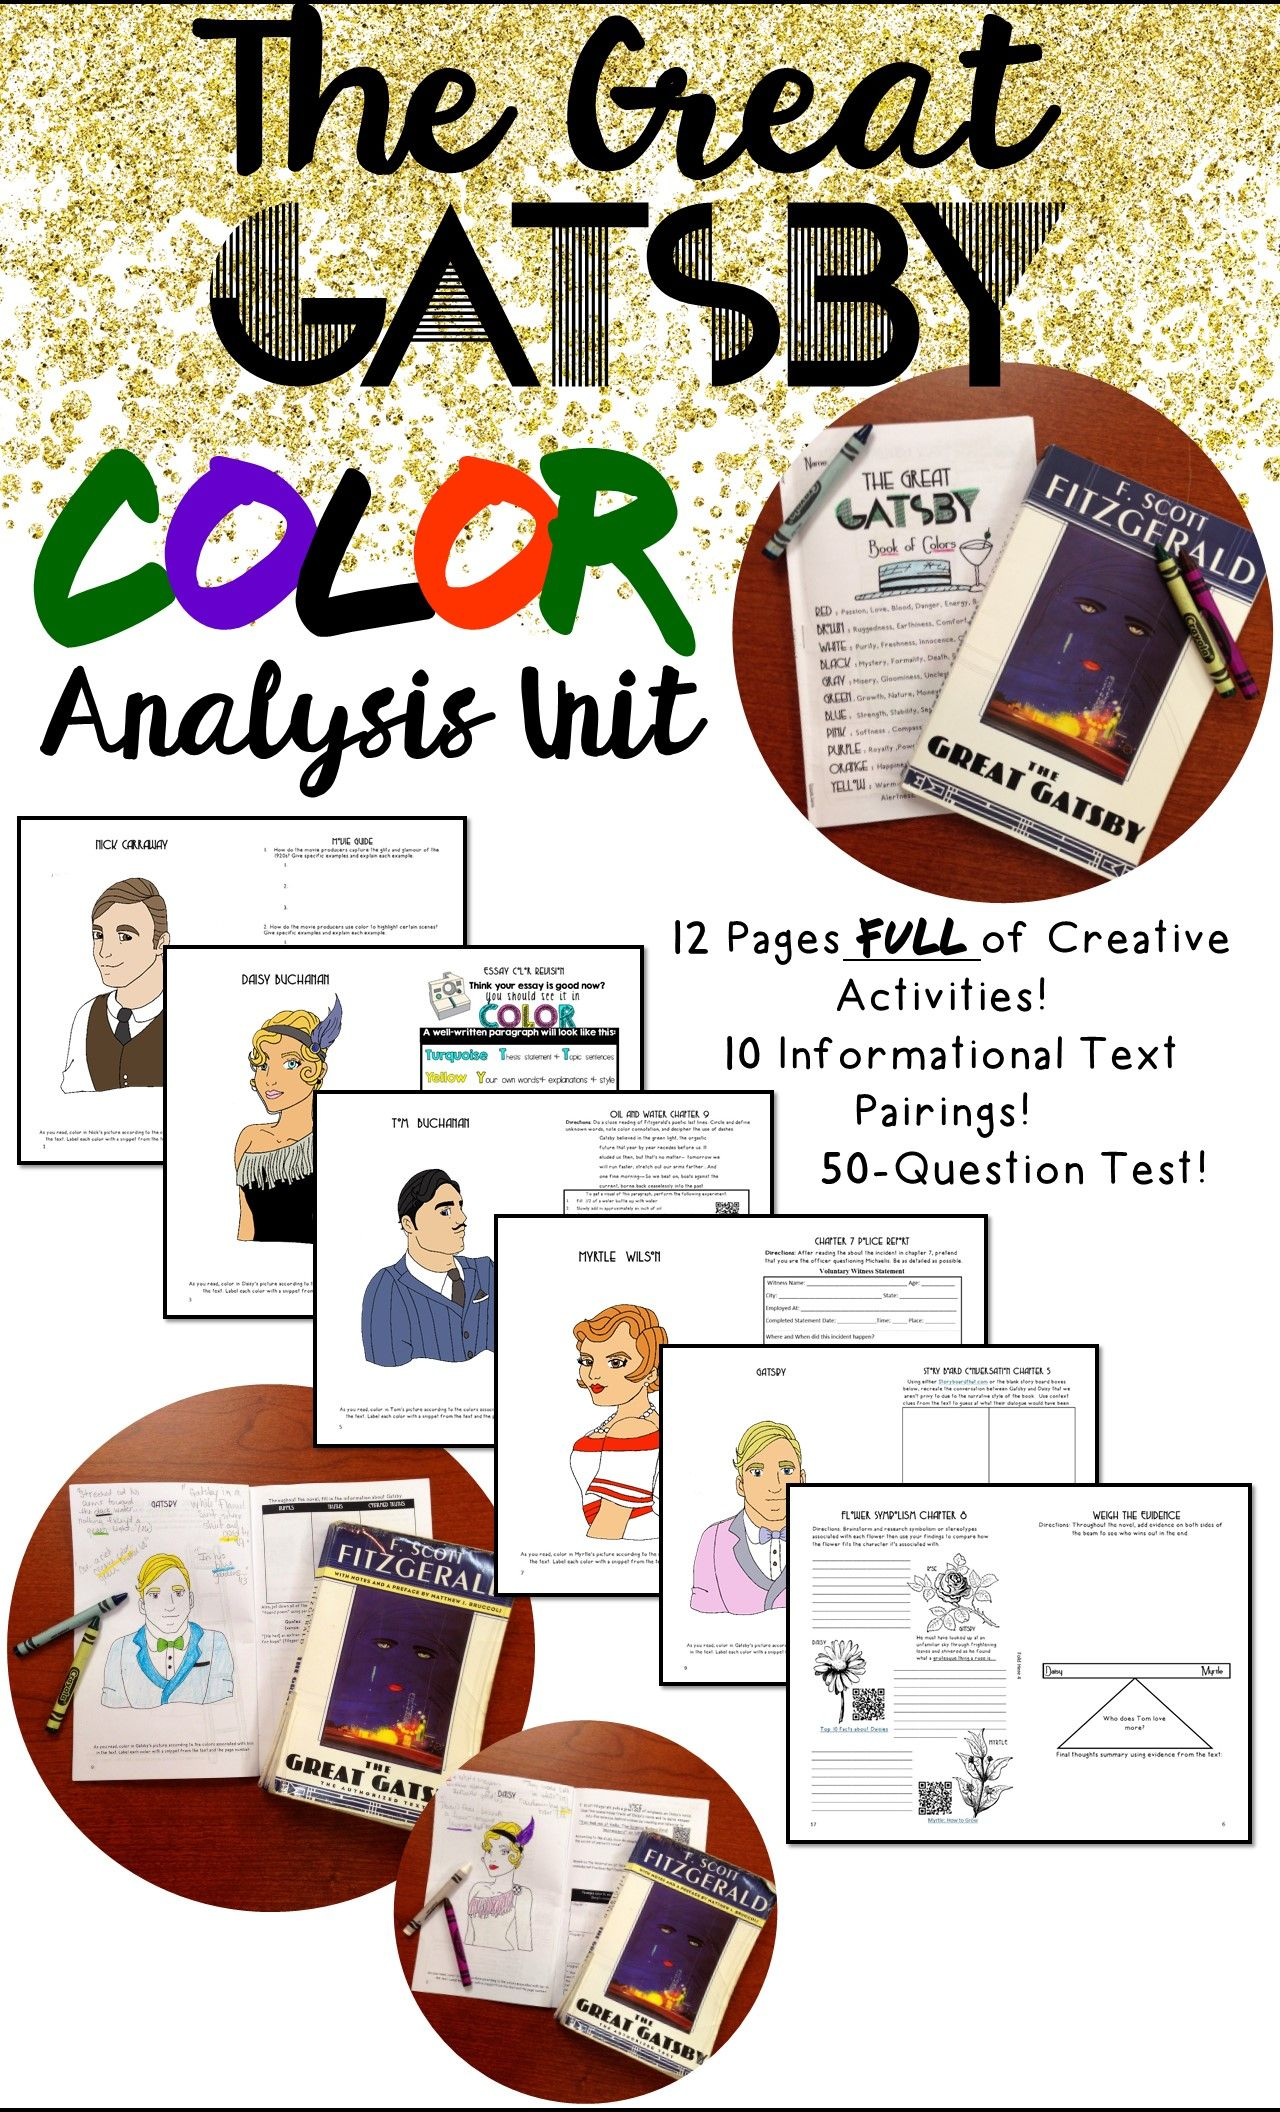 the great gatsby color analysis unit plan informational text the great gatsby color analysis unit uses color connotations and symbolism to get deep meanings